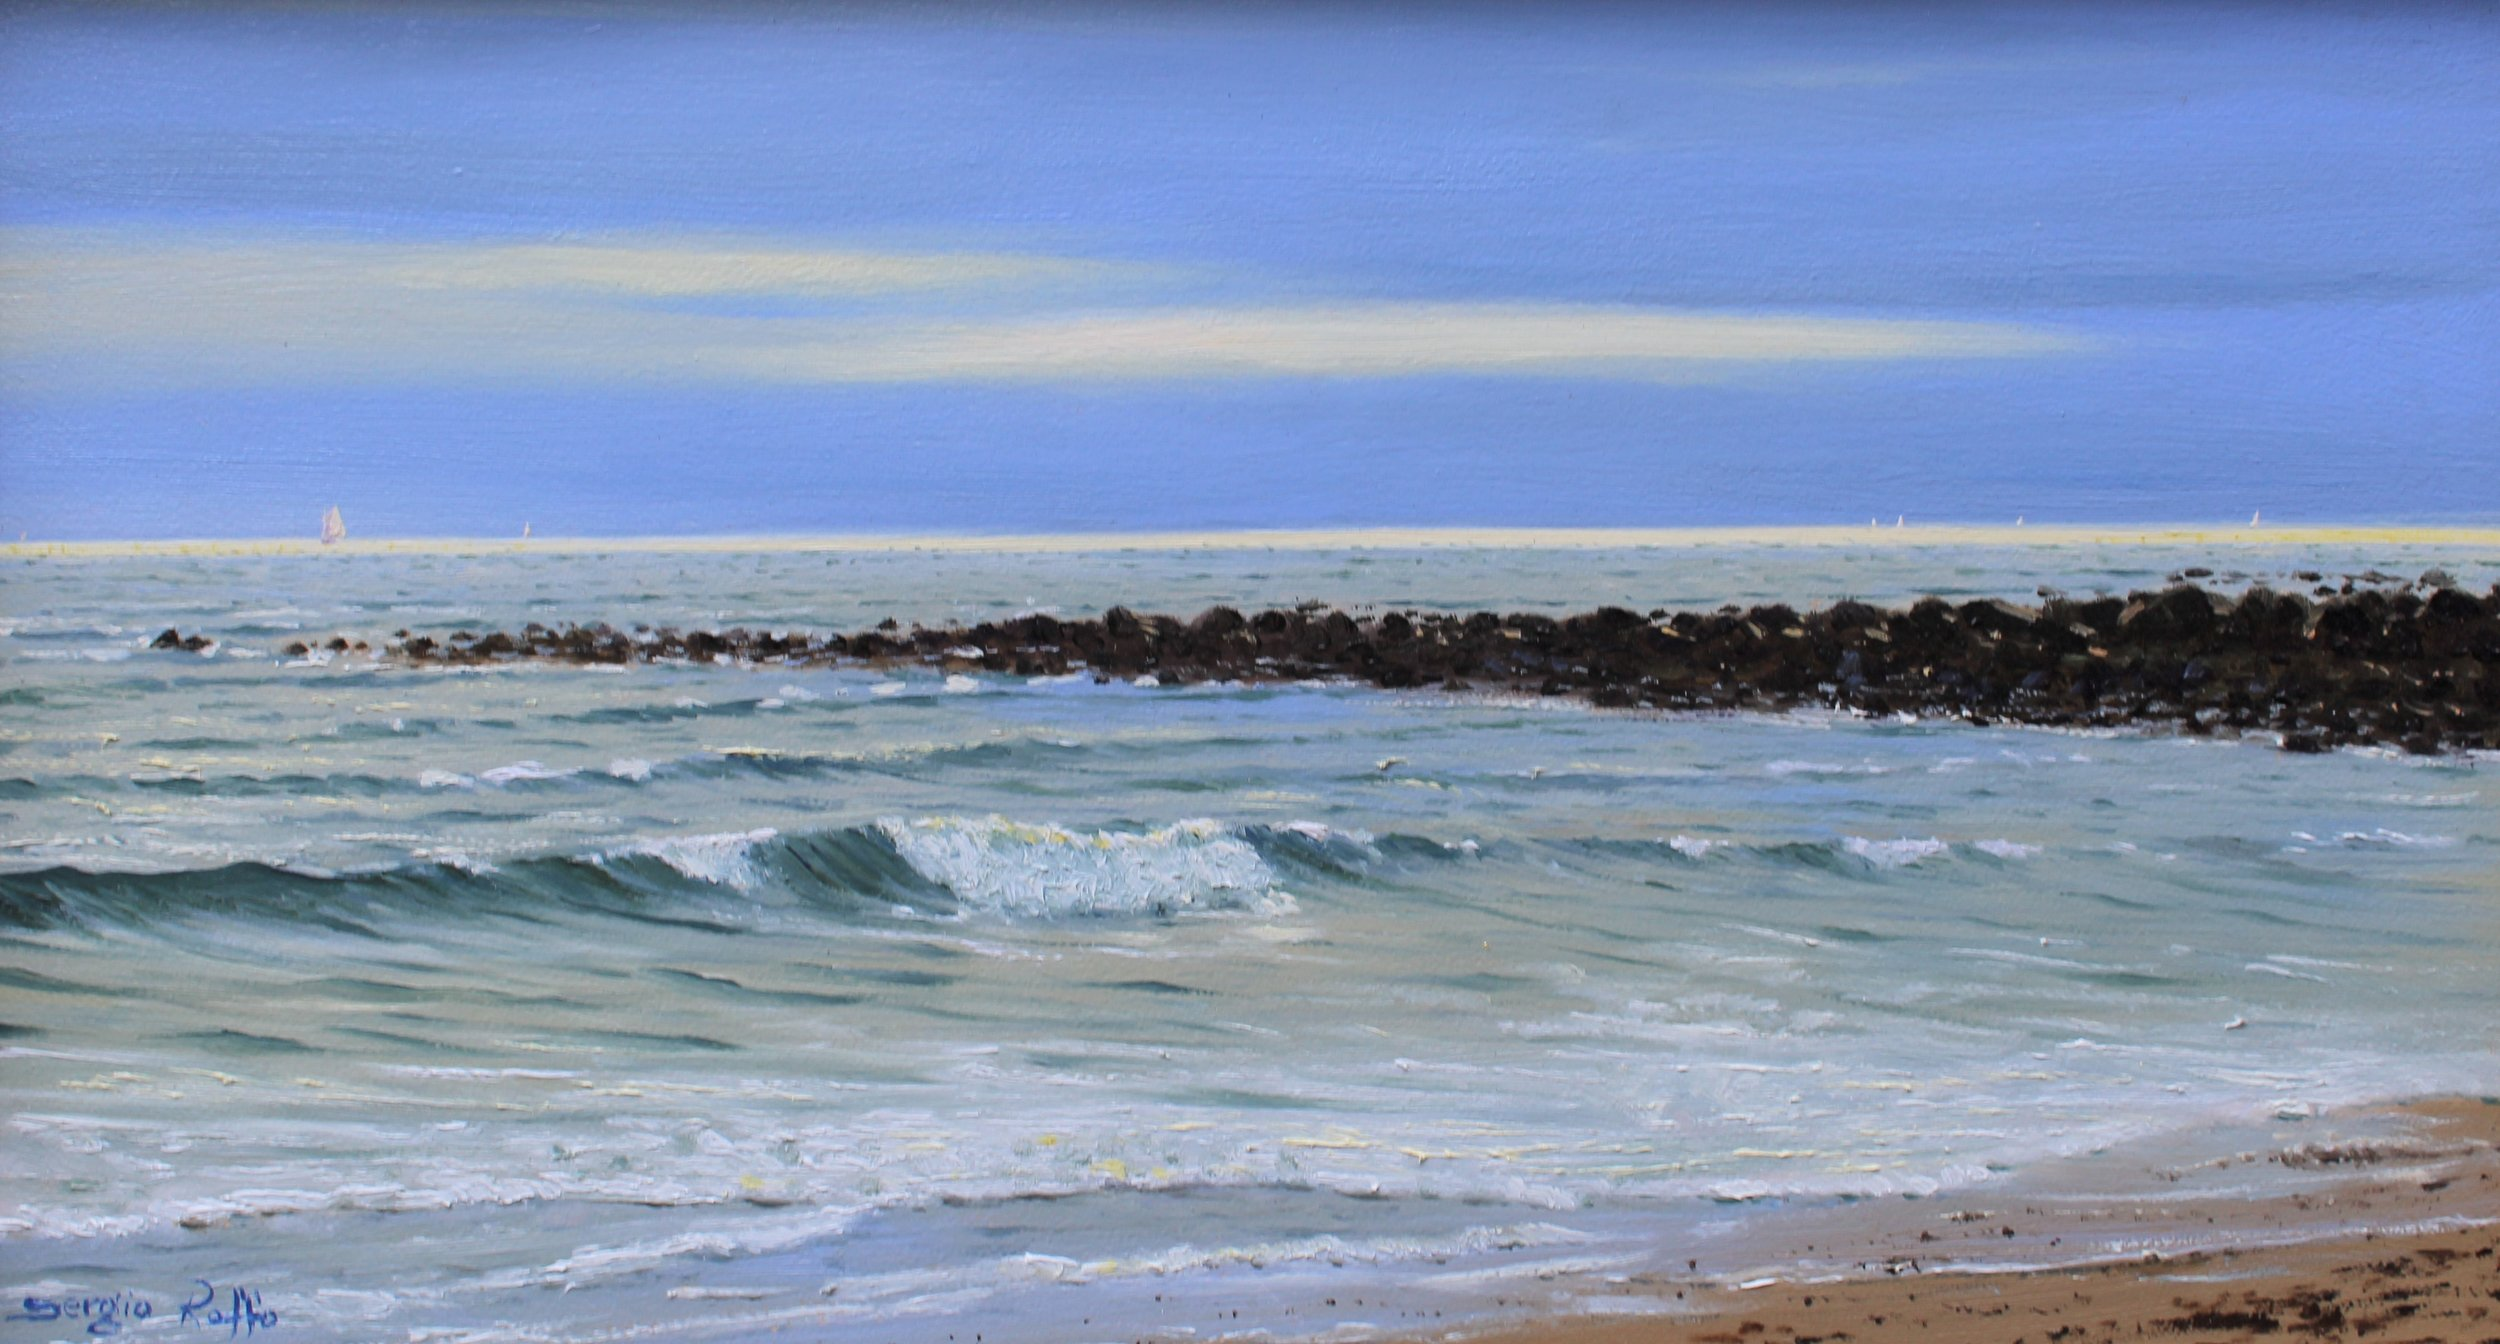 Jetties    Oil on panel  10 x 18 inches